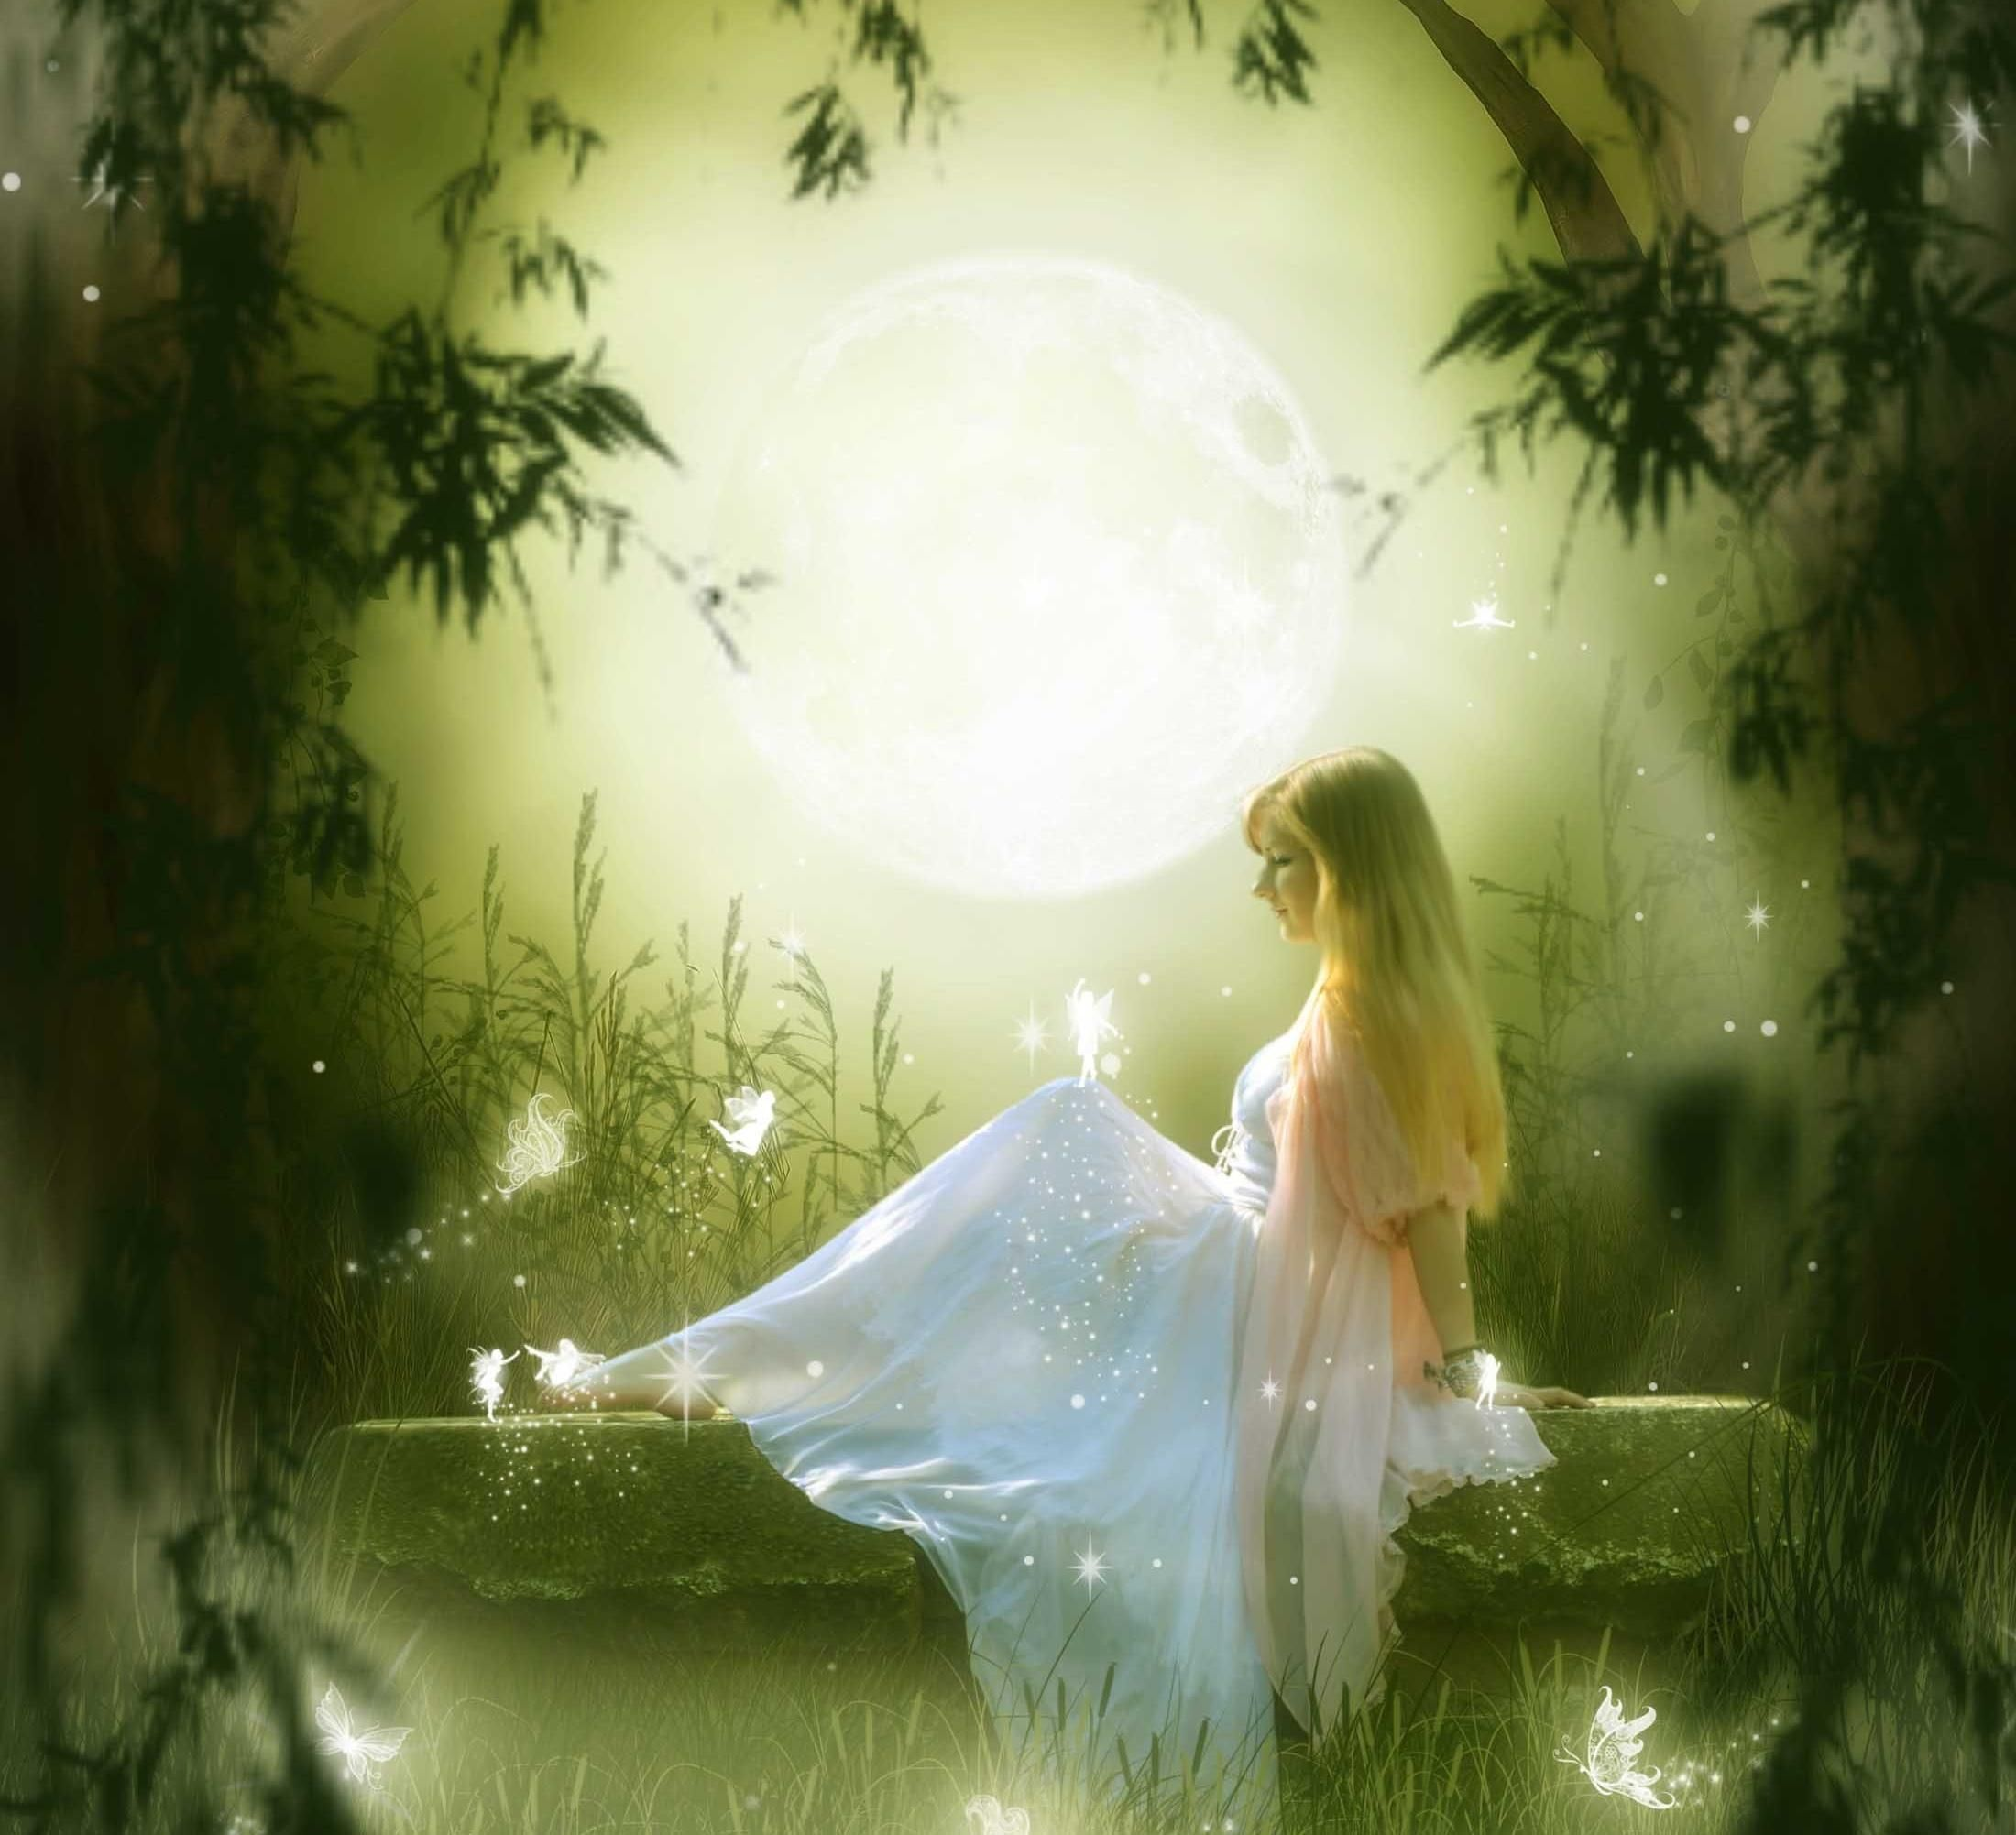 Beautiful fairies wallpapers group hd wallpapers pinterest beautiful fairies wallpapers group altavistaventures Image collections